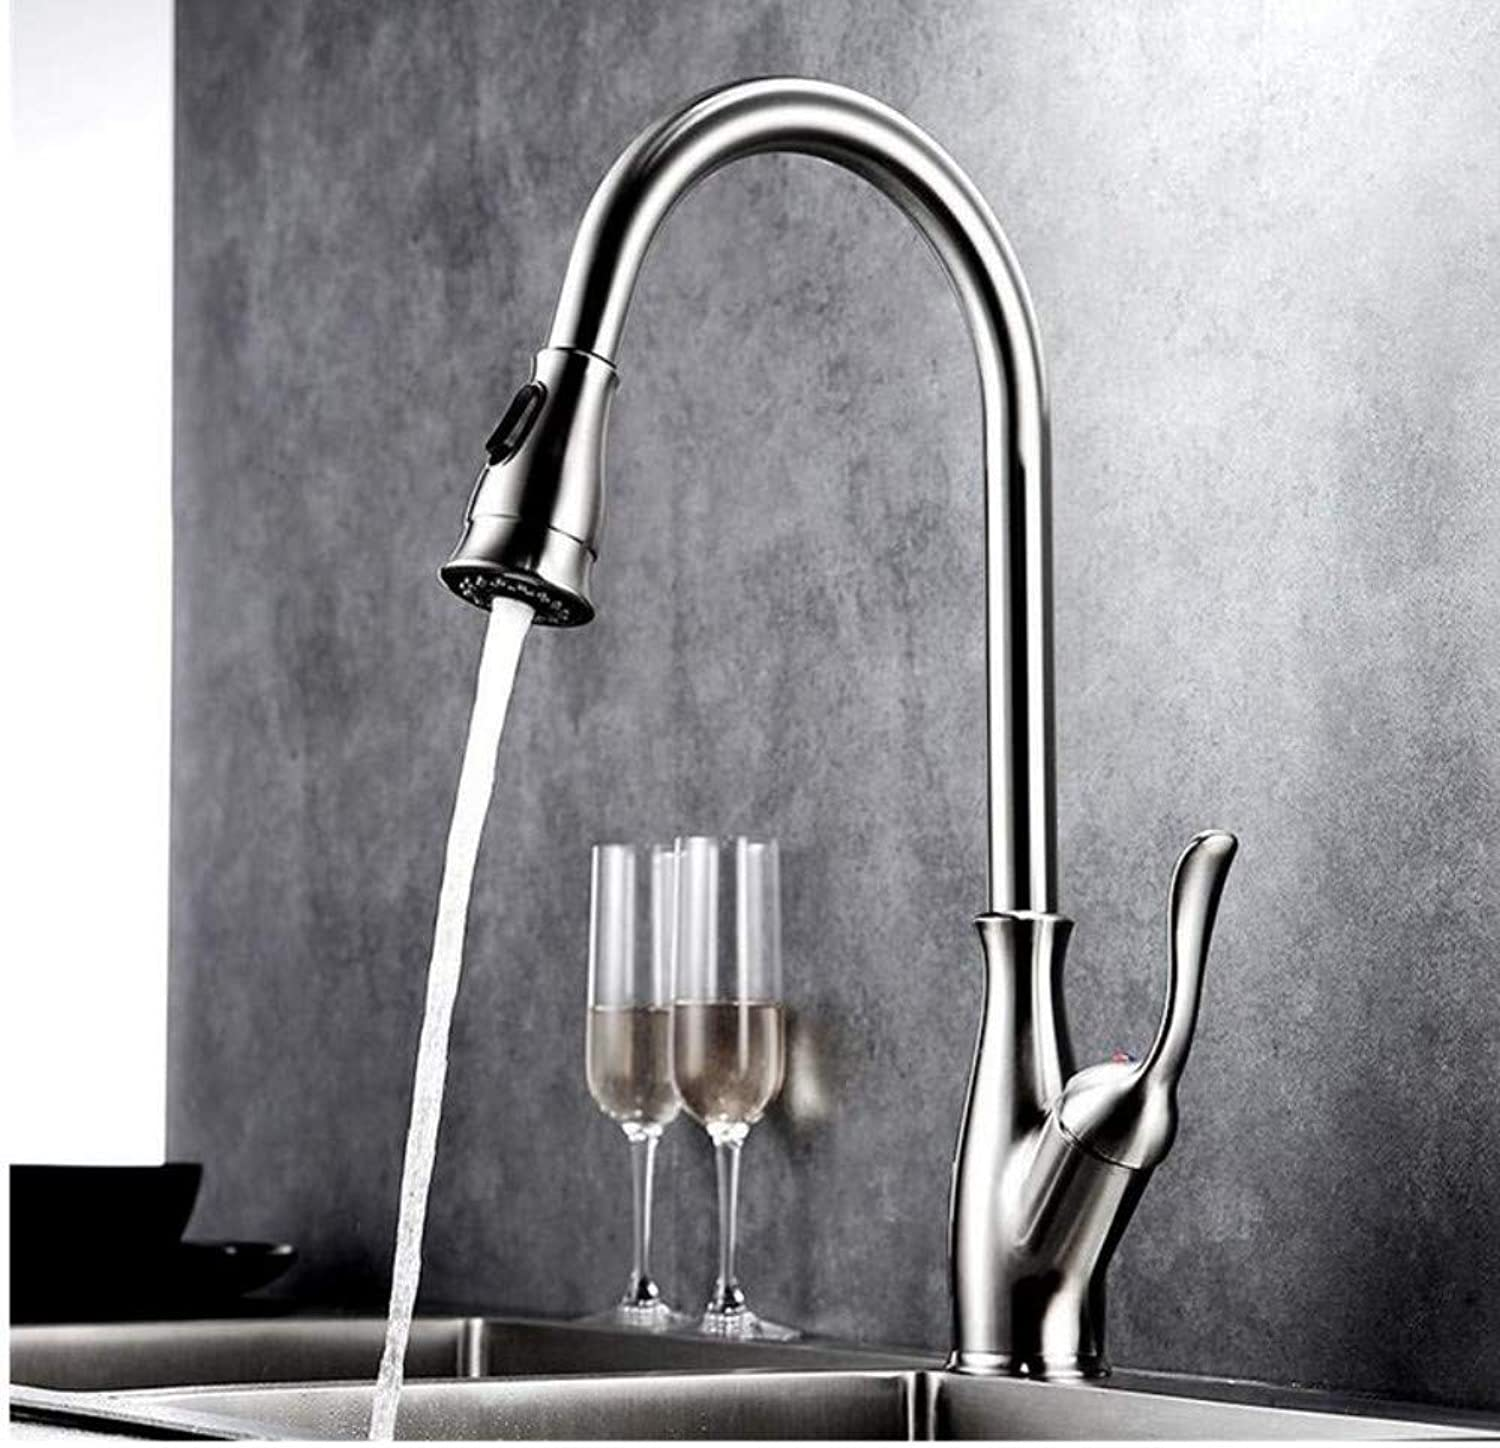 Faucet Lead-Free Square Innovation Faucet Solid Brass Mixer Single Handle Water Mixer Tap Cold Hot